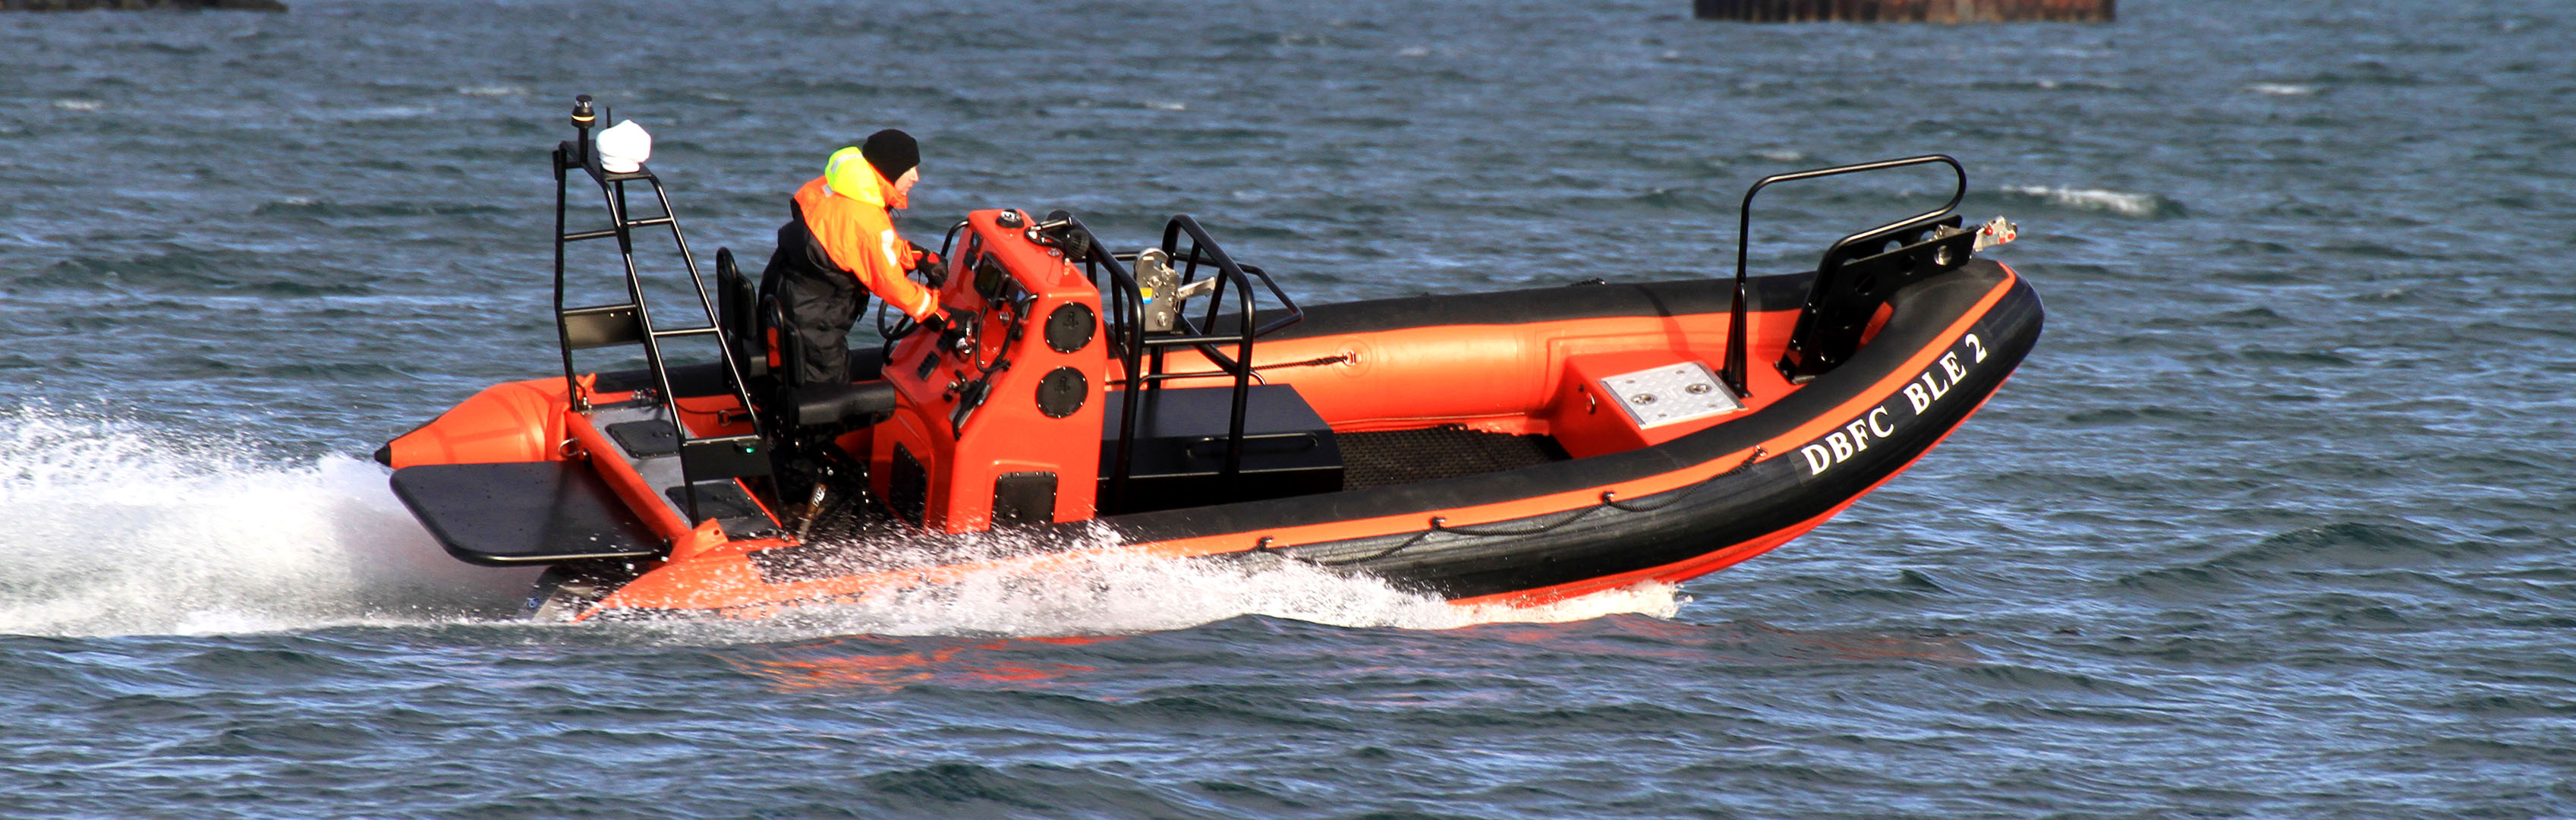 6.9m multi purpose rib from Tornado Boats